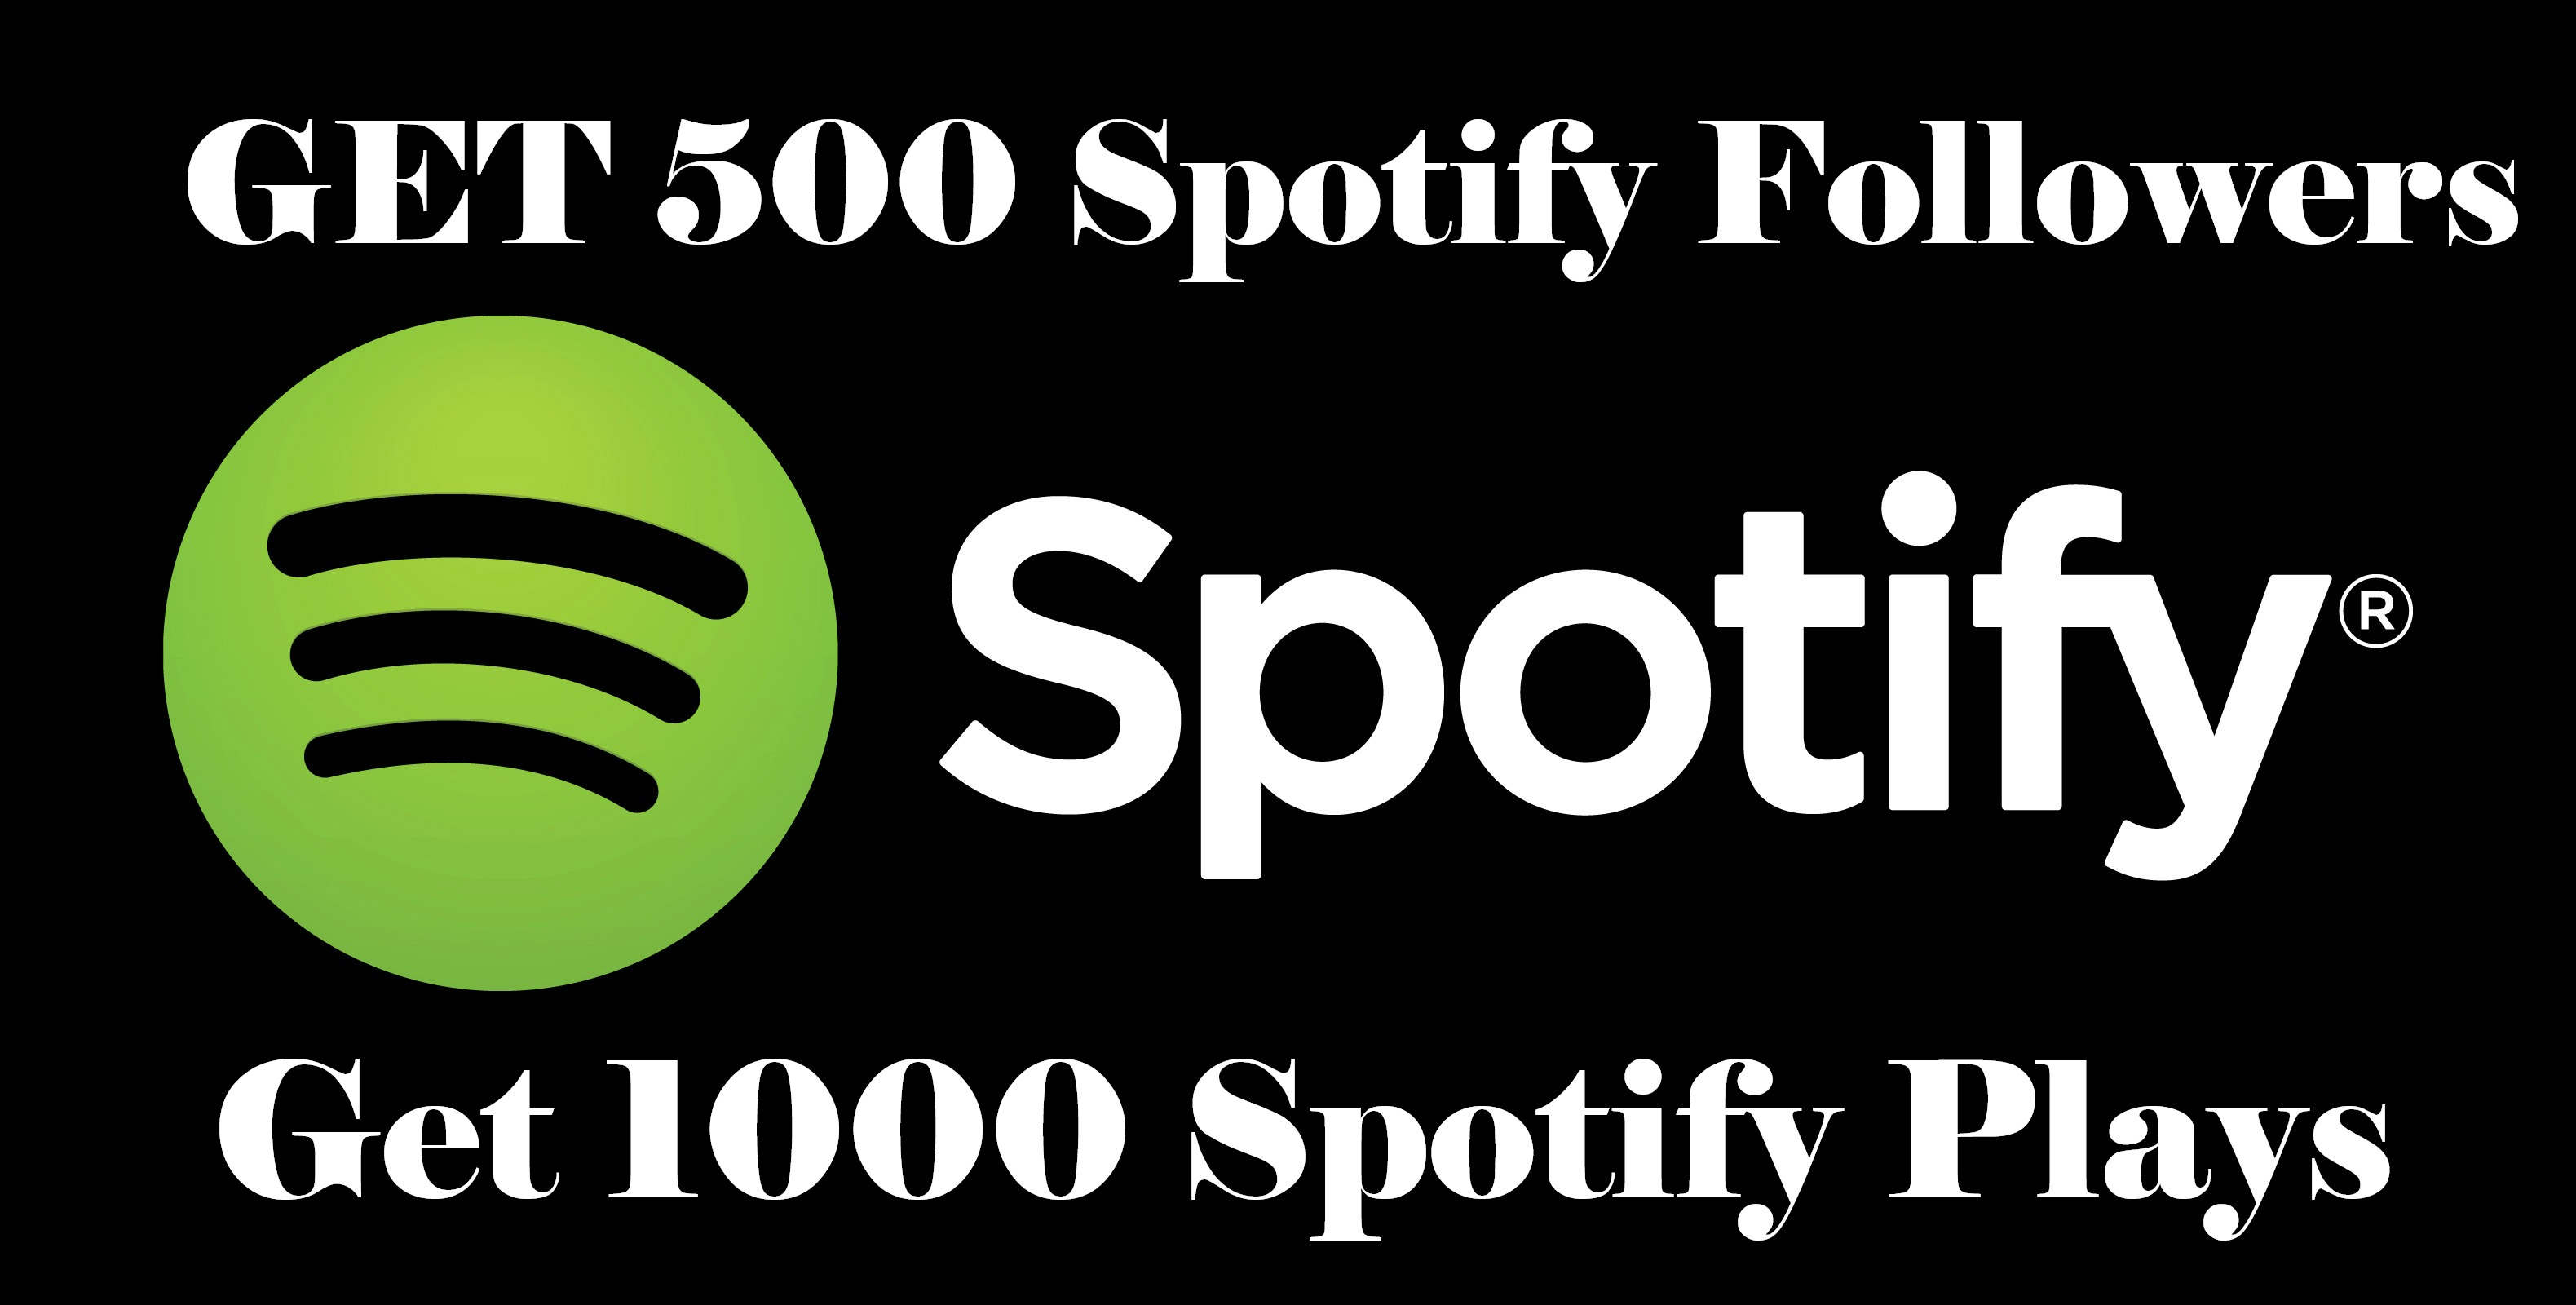 give 500 Spotify Followers & 1000 Spotify Plays